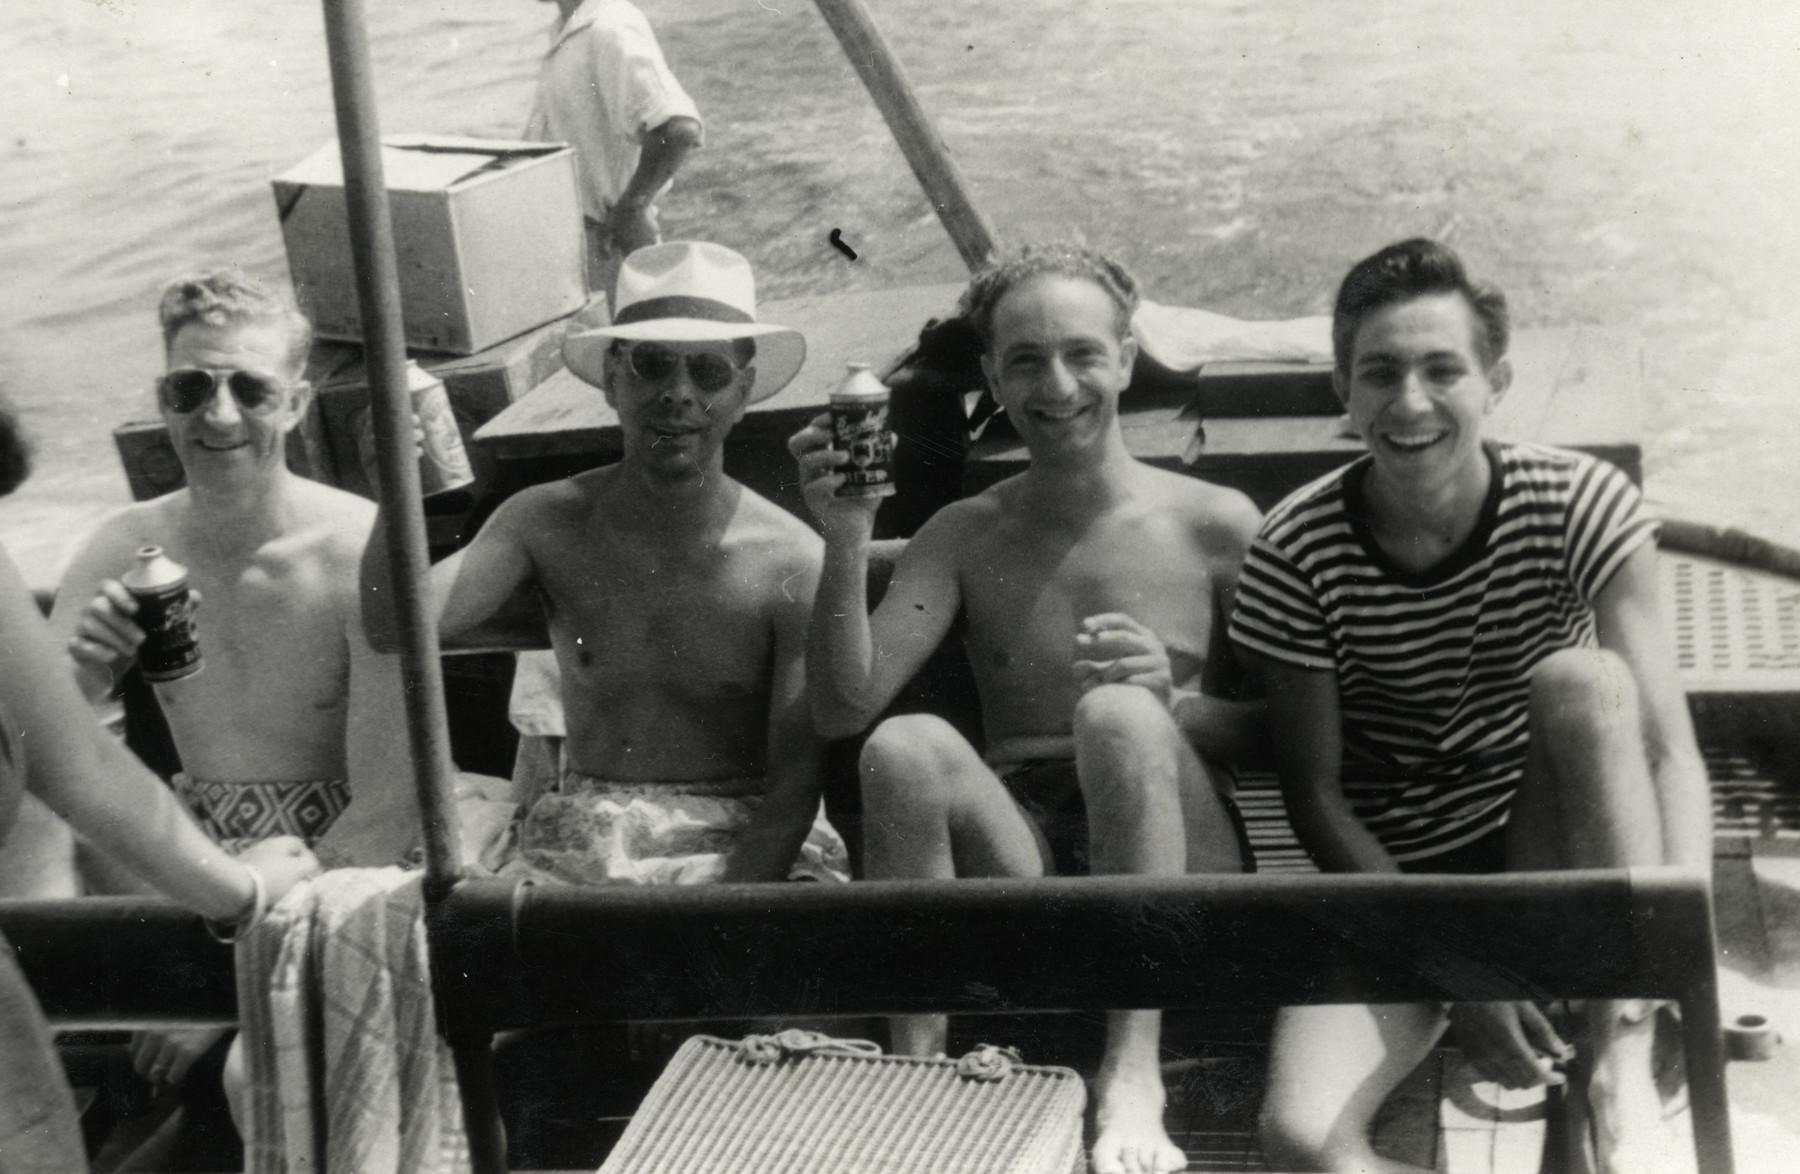 Kurt Marcus relaxes with his friends on a boat, probably in Japan.